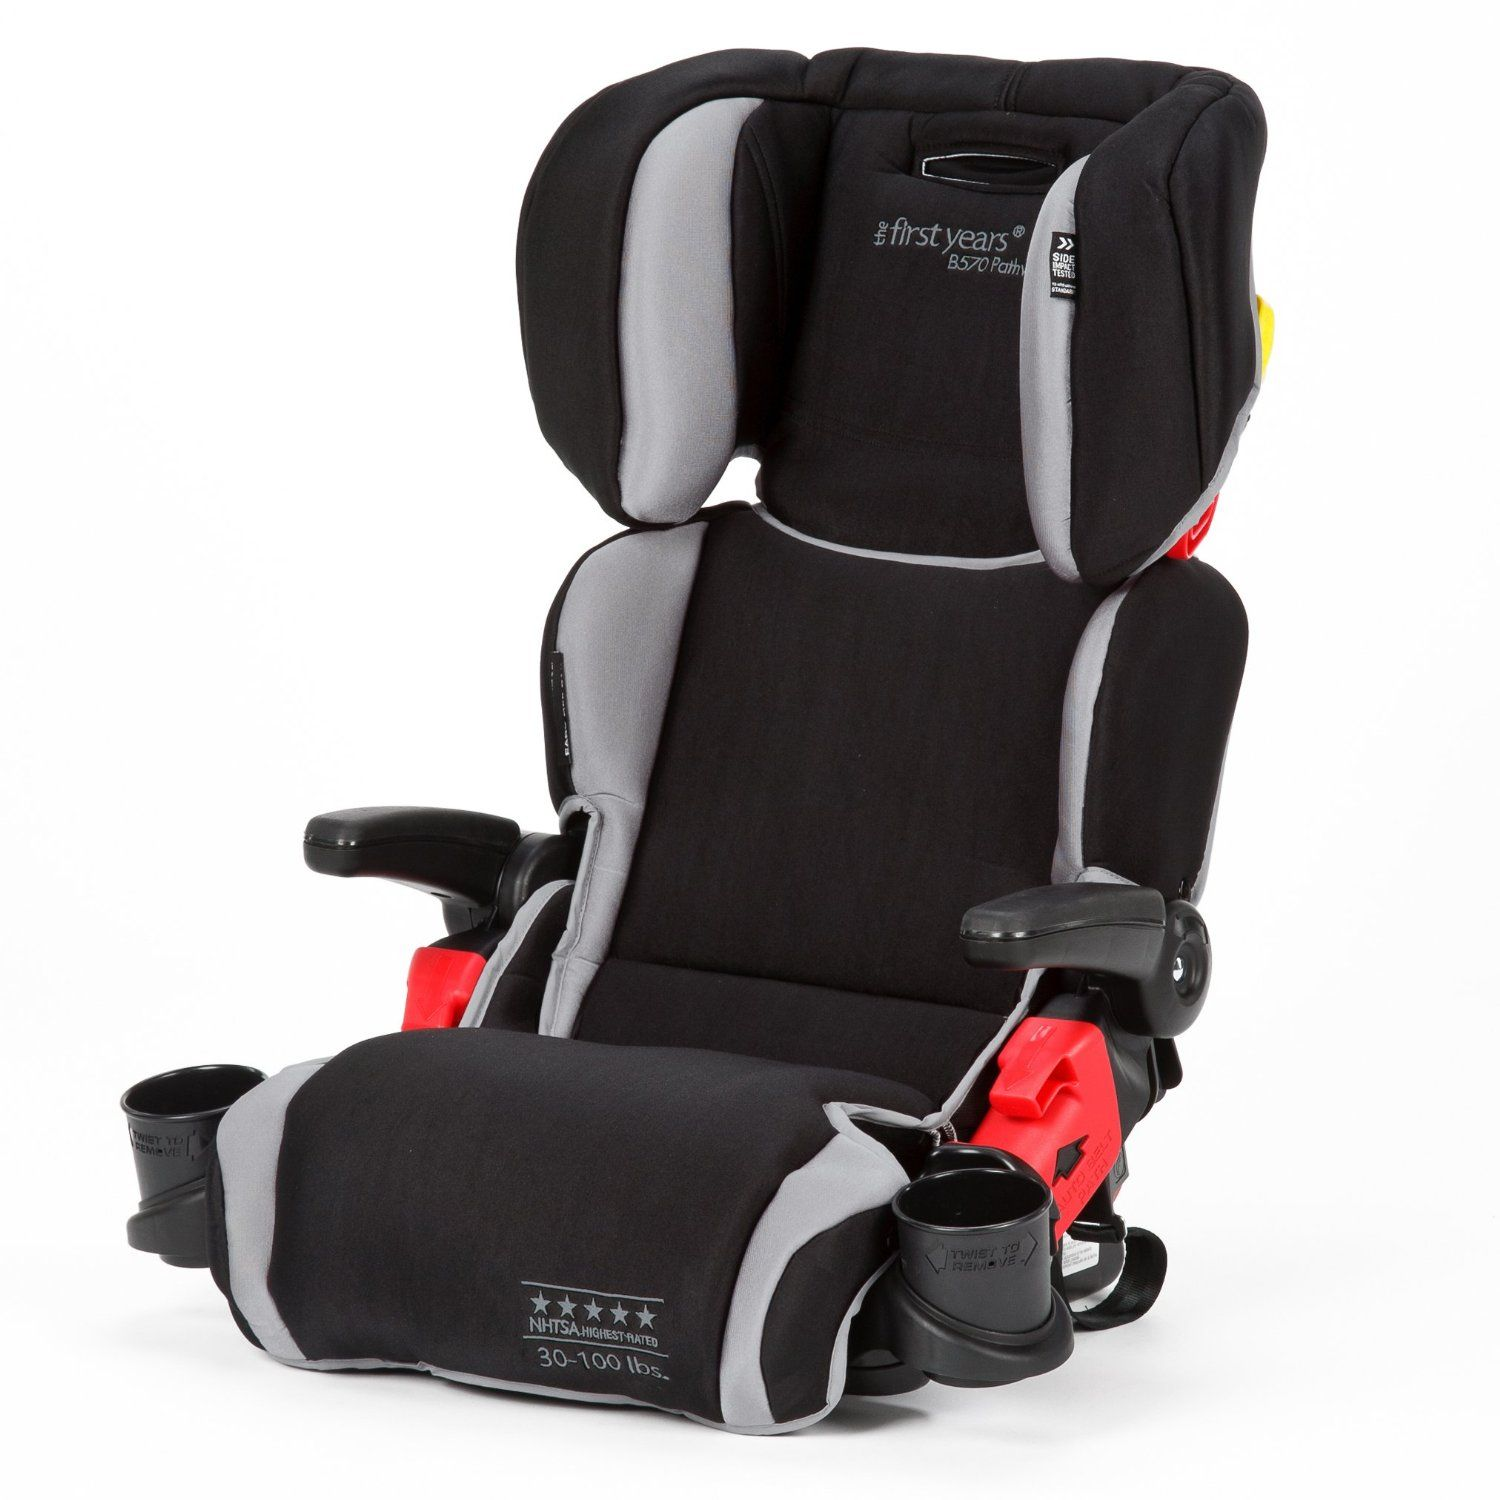 Child Safety Booster Car Seats. The First Years Compass